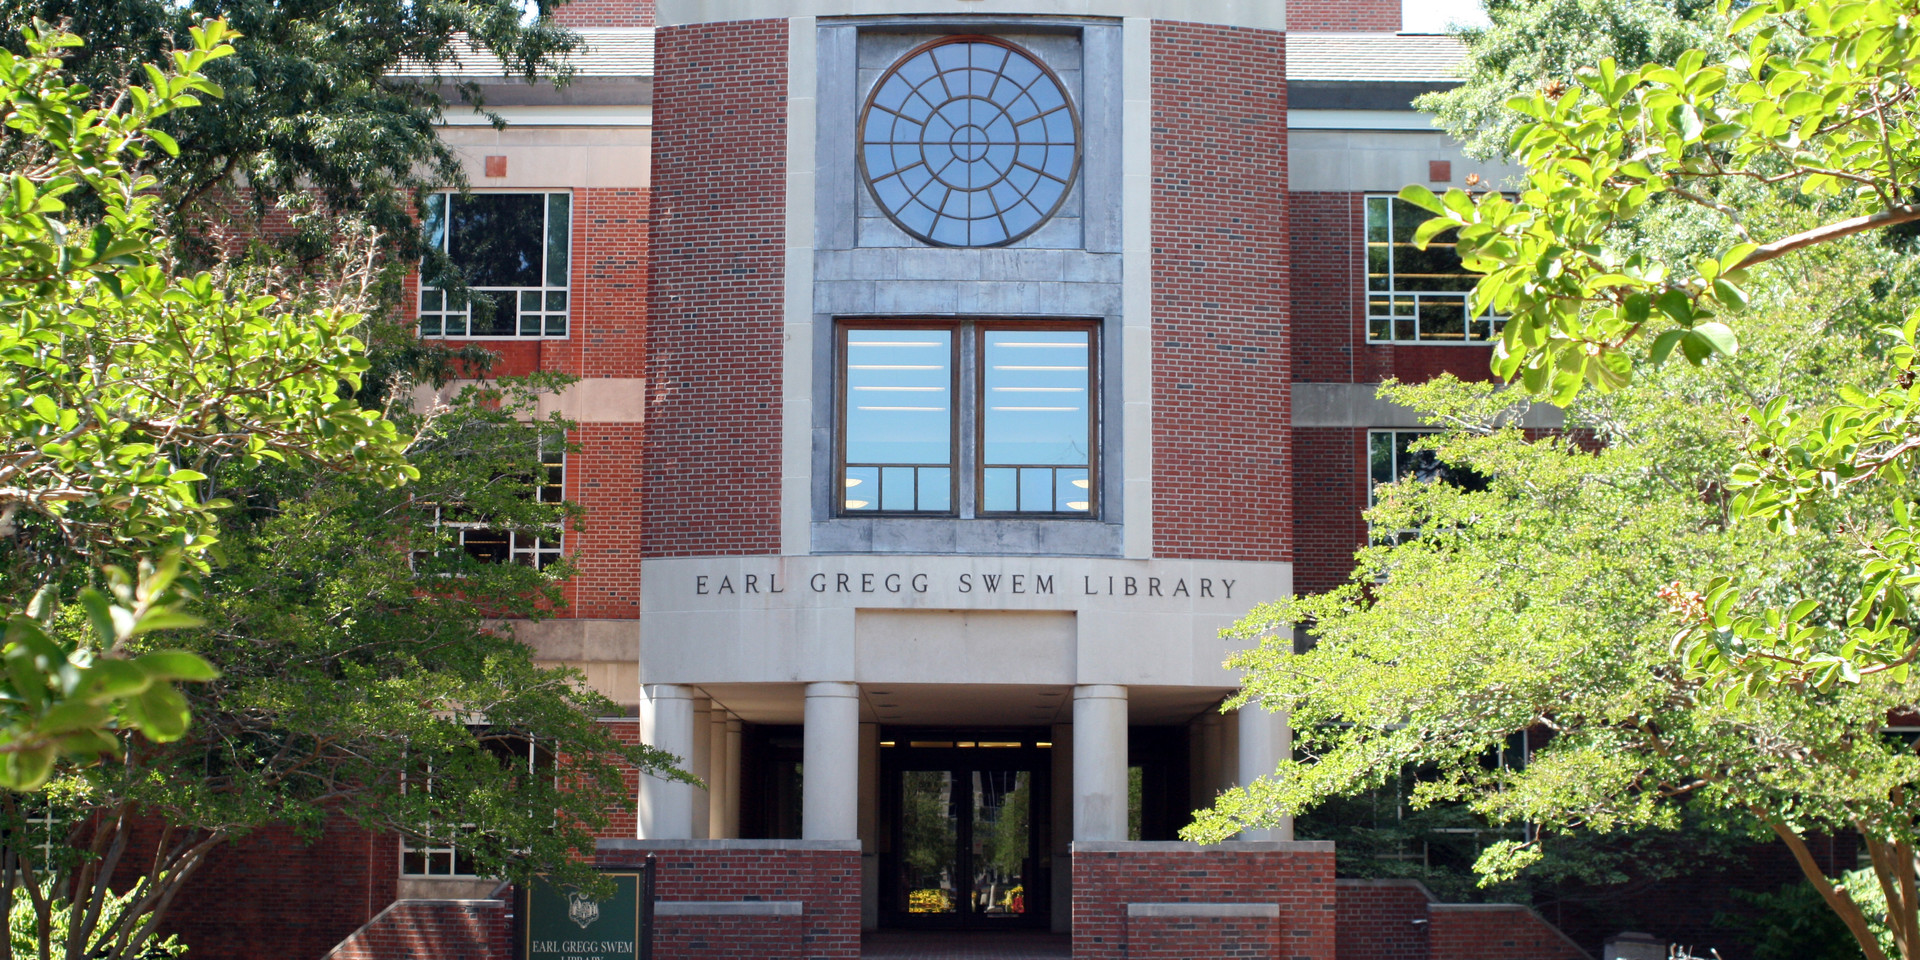 Earl Gregg SWEM Library, College of William and Mary - Williamsburg, Virginia